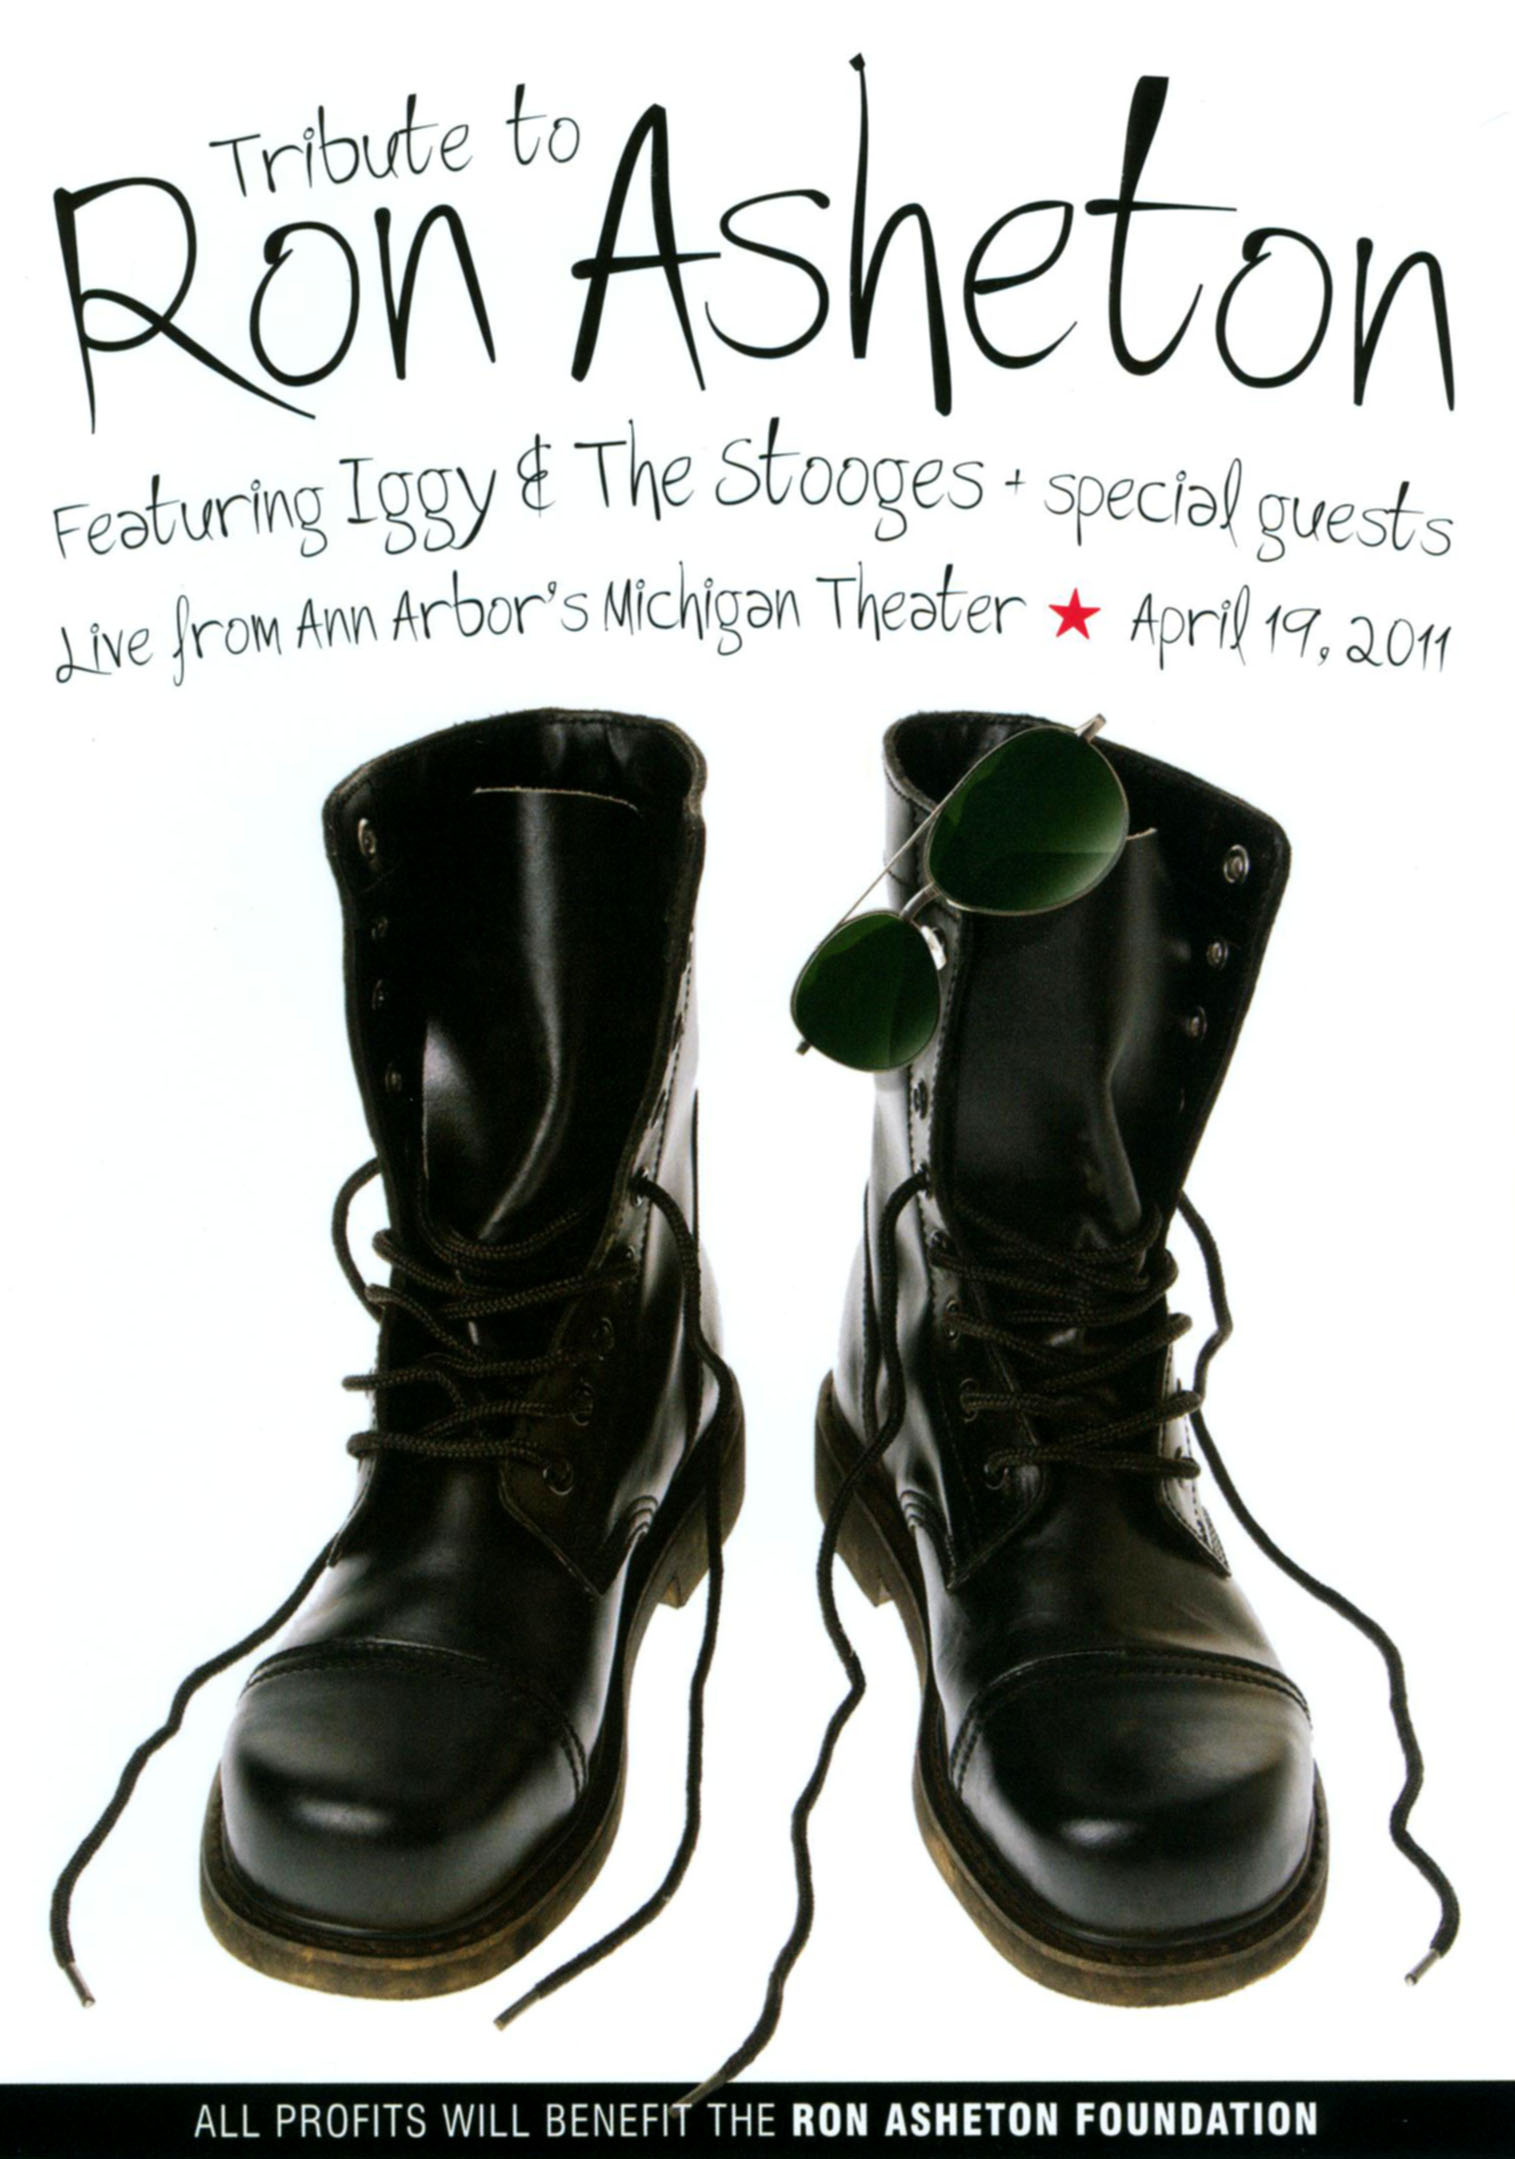 Tribute to Ron Asheton Featuring Iggy and the Stooges Plus Special Guests